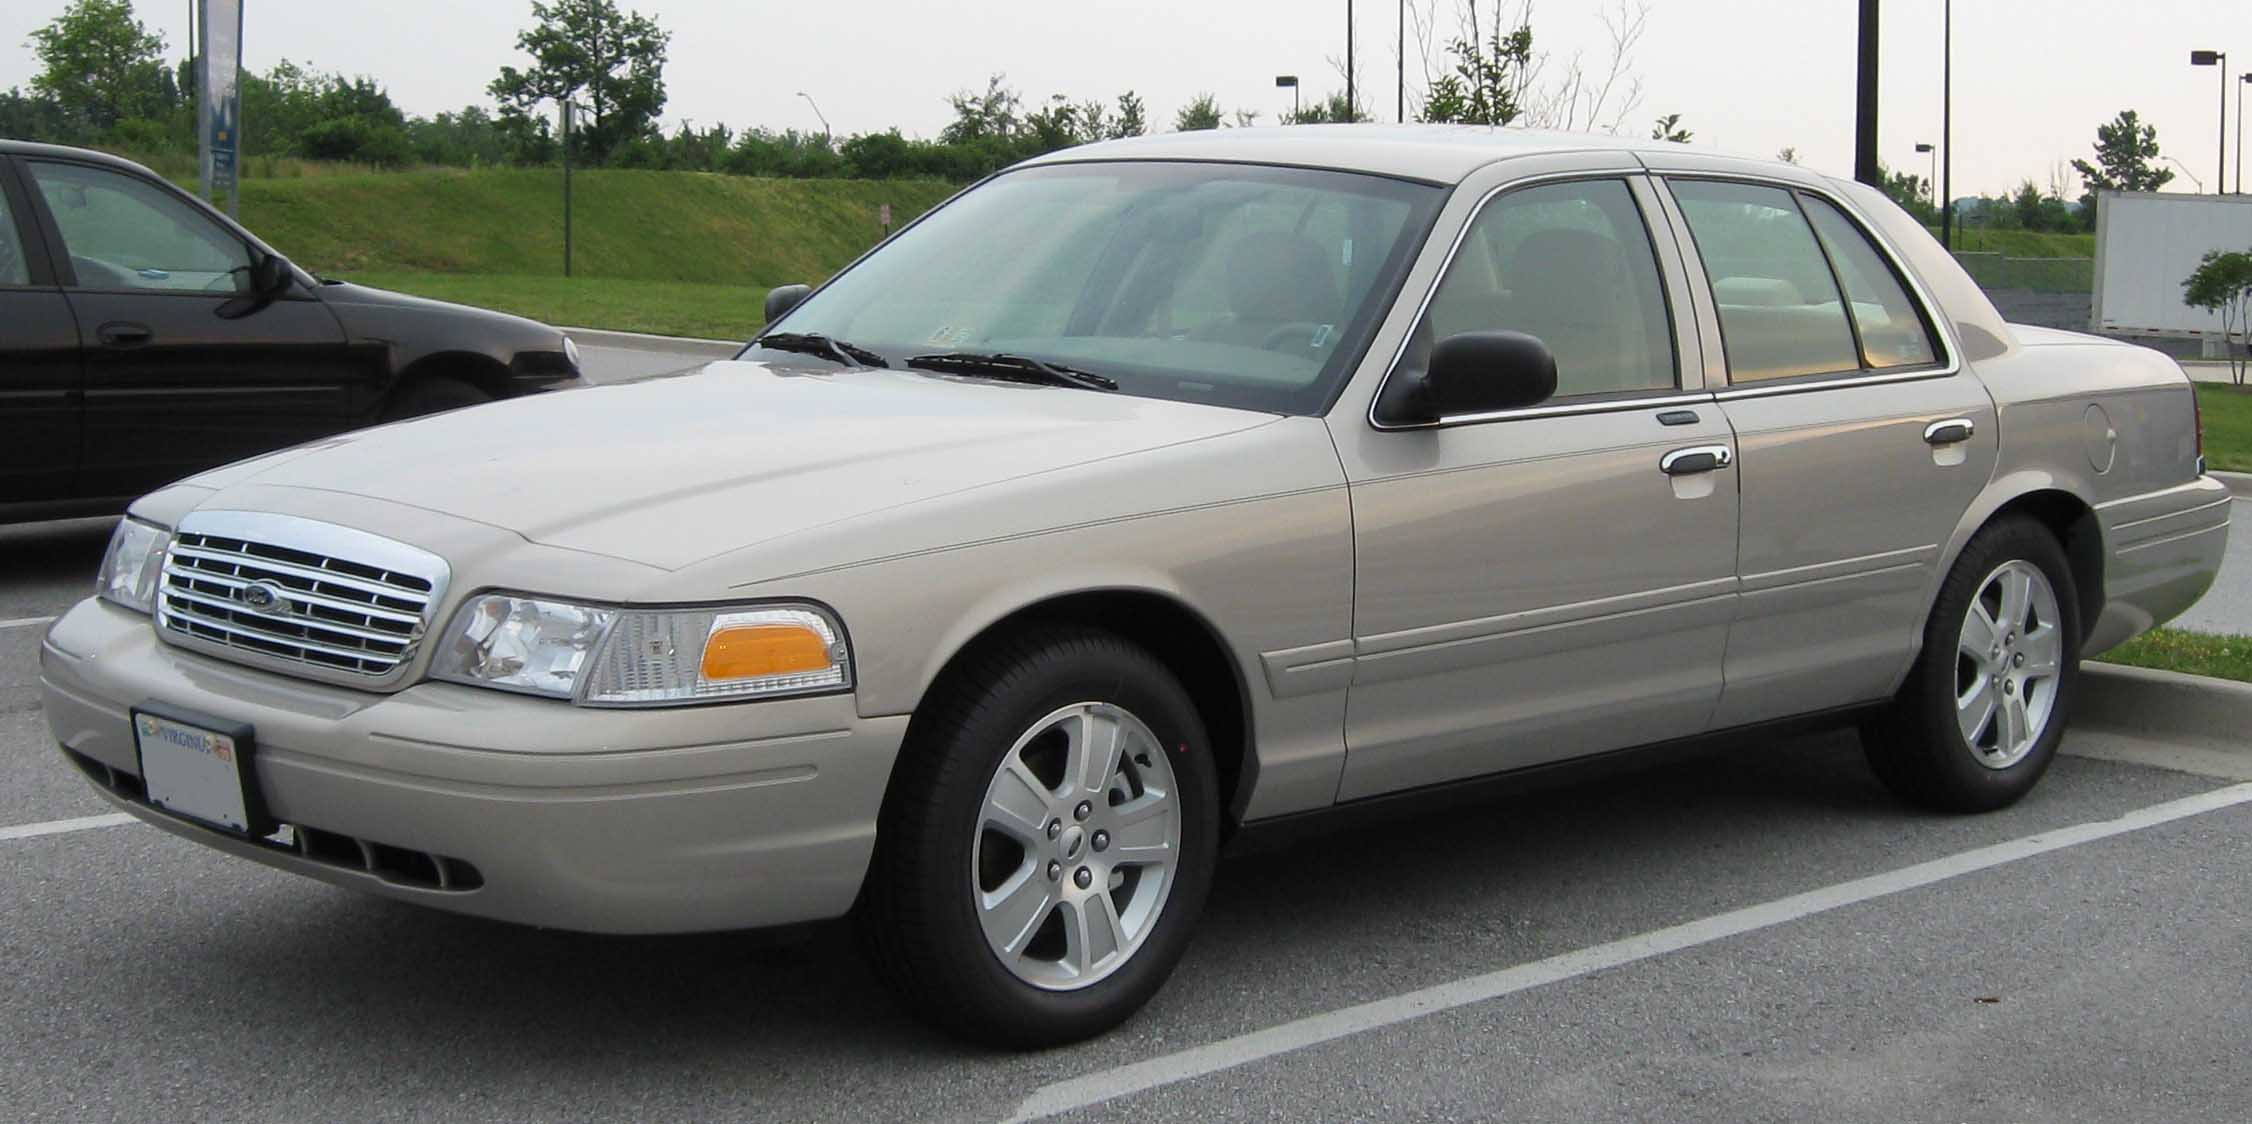 Ford Crown Victoria 2007 #1